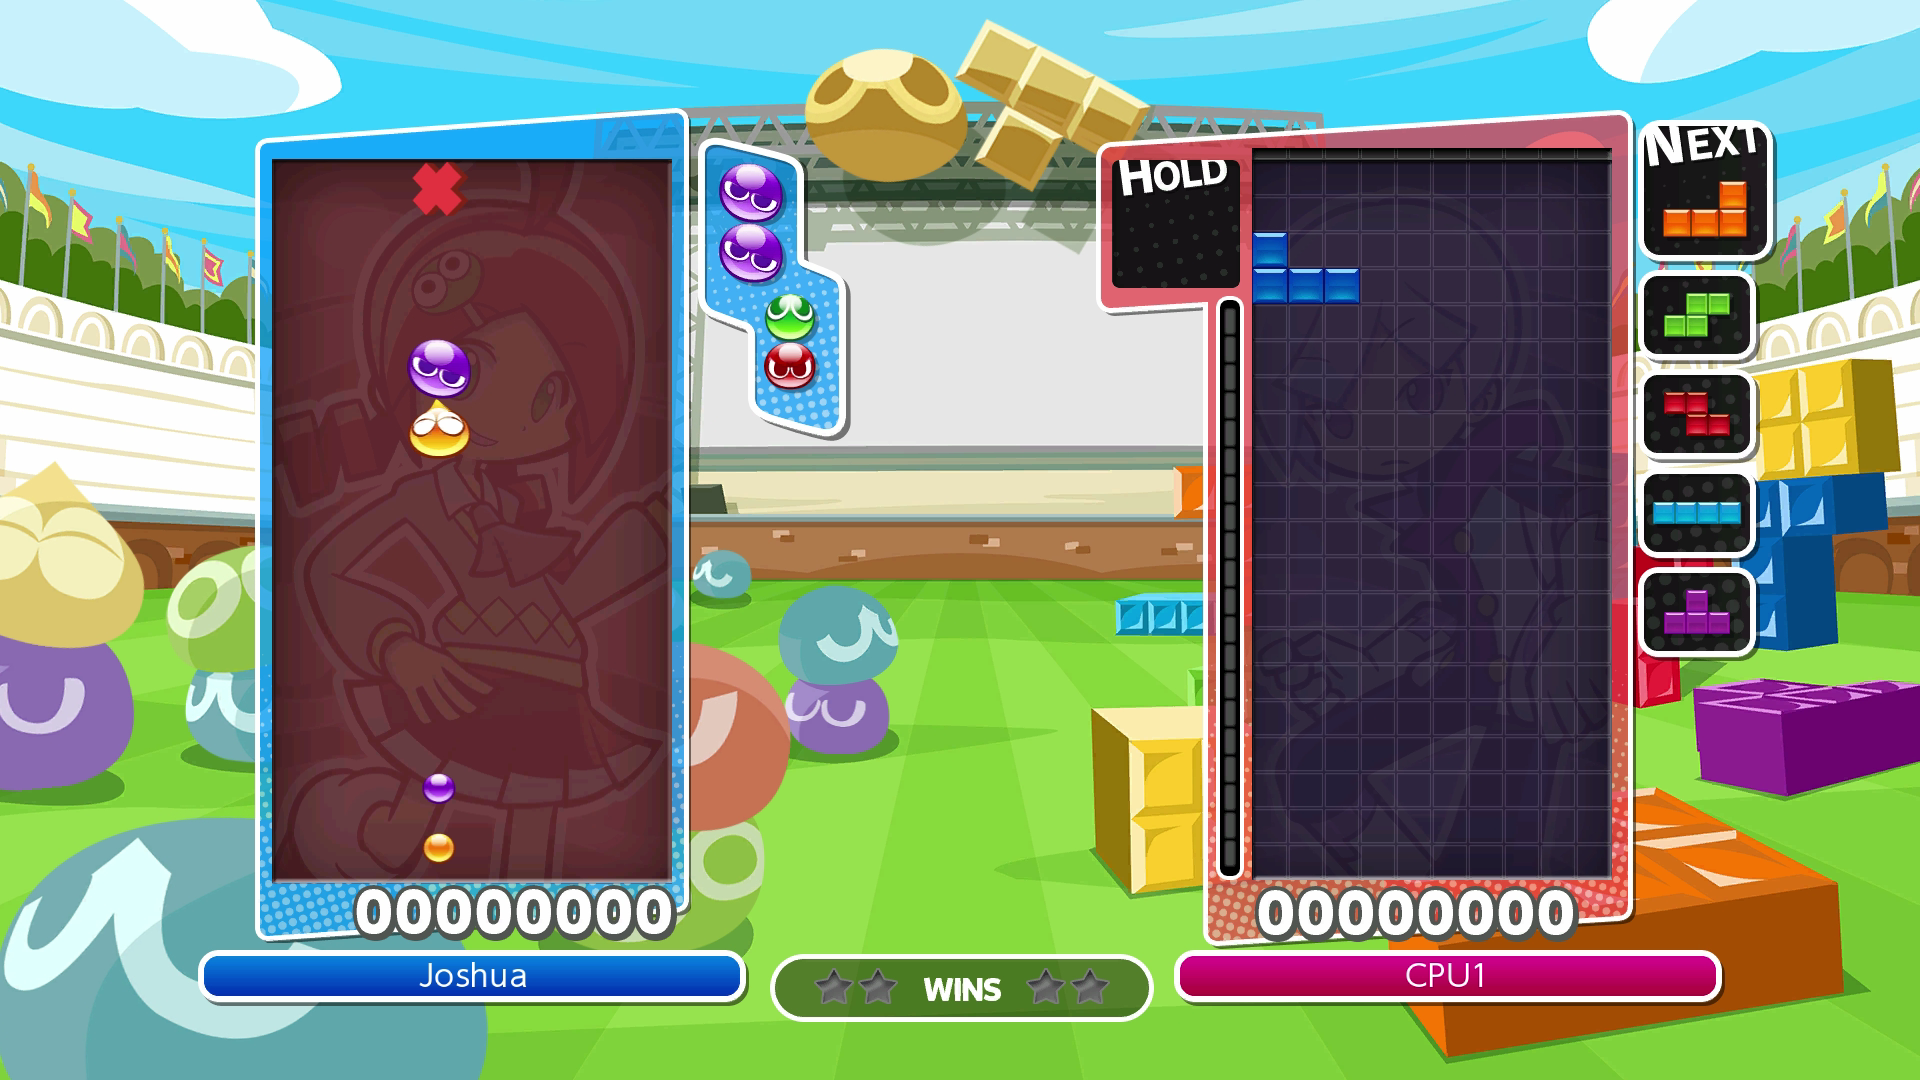 Puyo Tetris Switch Review Marigold News Reviews Game Nintendo Is A Surprise For Fans In The West Since Its First New Entry Franchise To Leave Japan Pop Fever Way Back